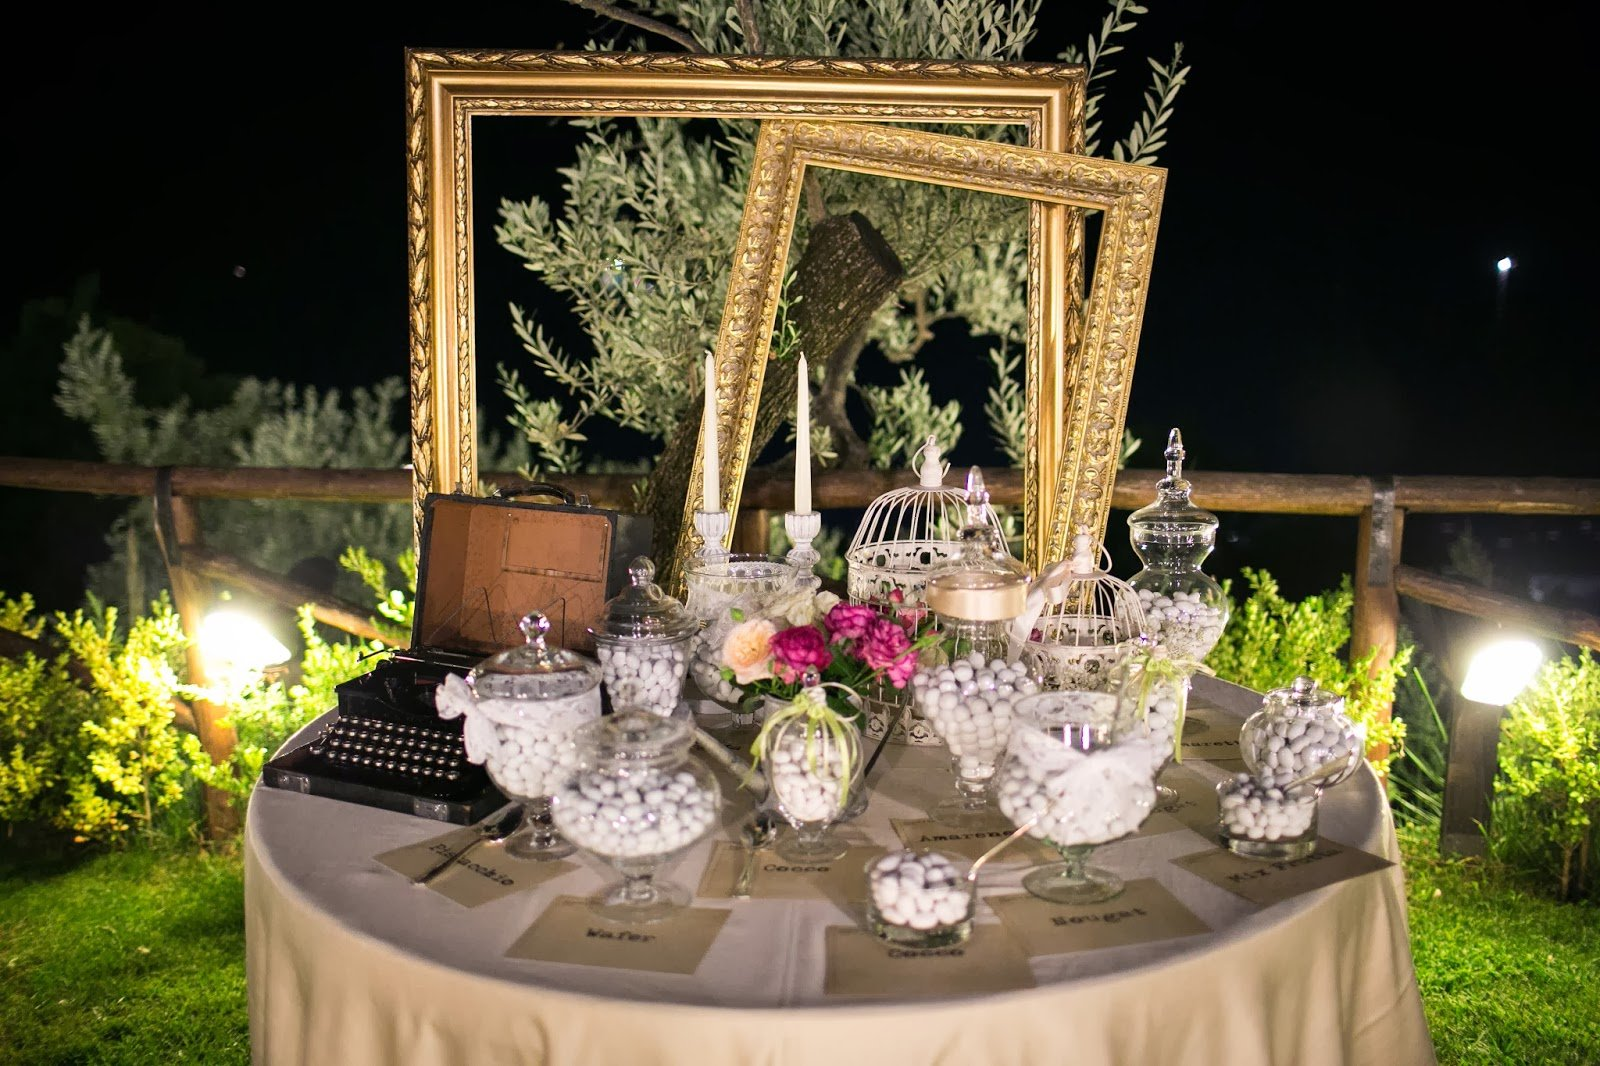 Matrimonio Country Chic Salento : Matrimonio tra il vintage e country chic a casa di ro